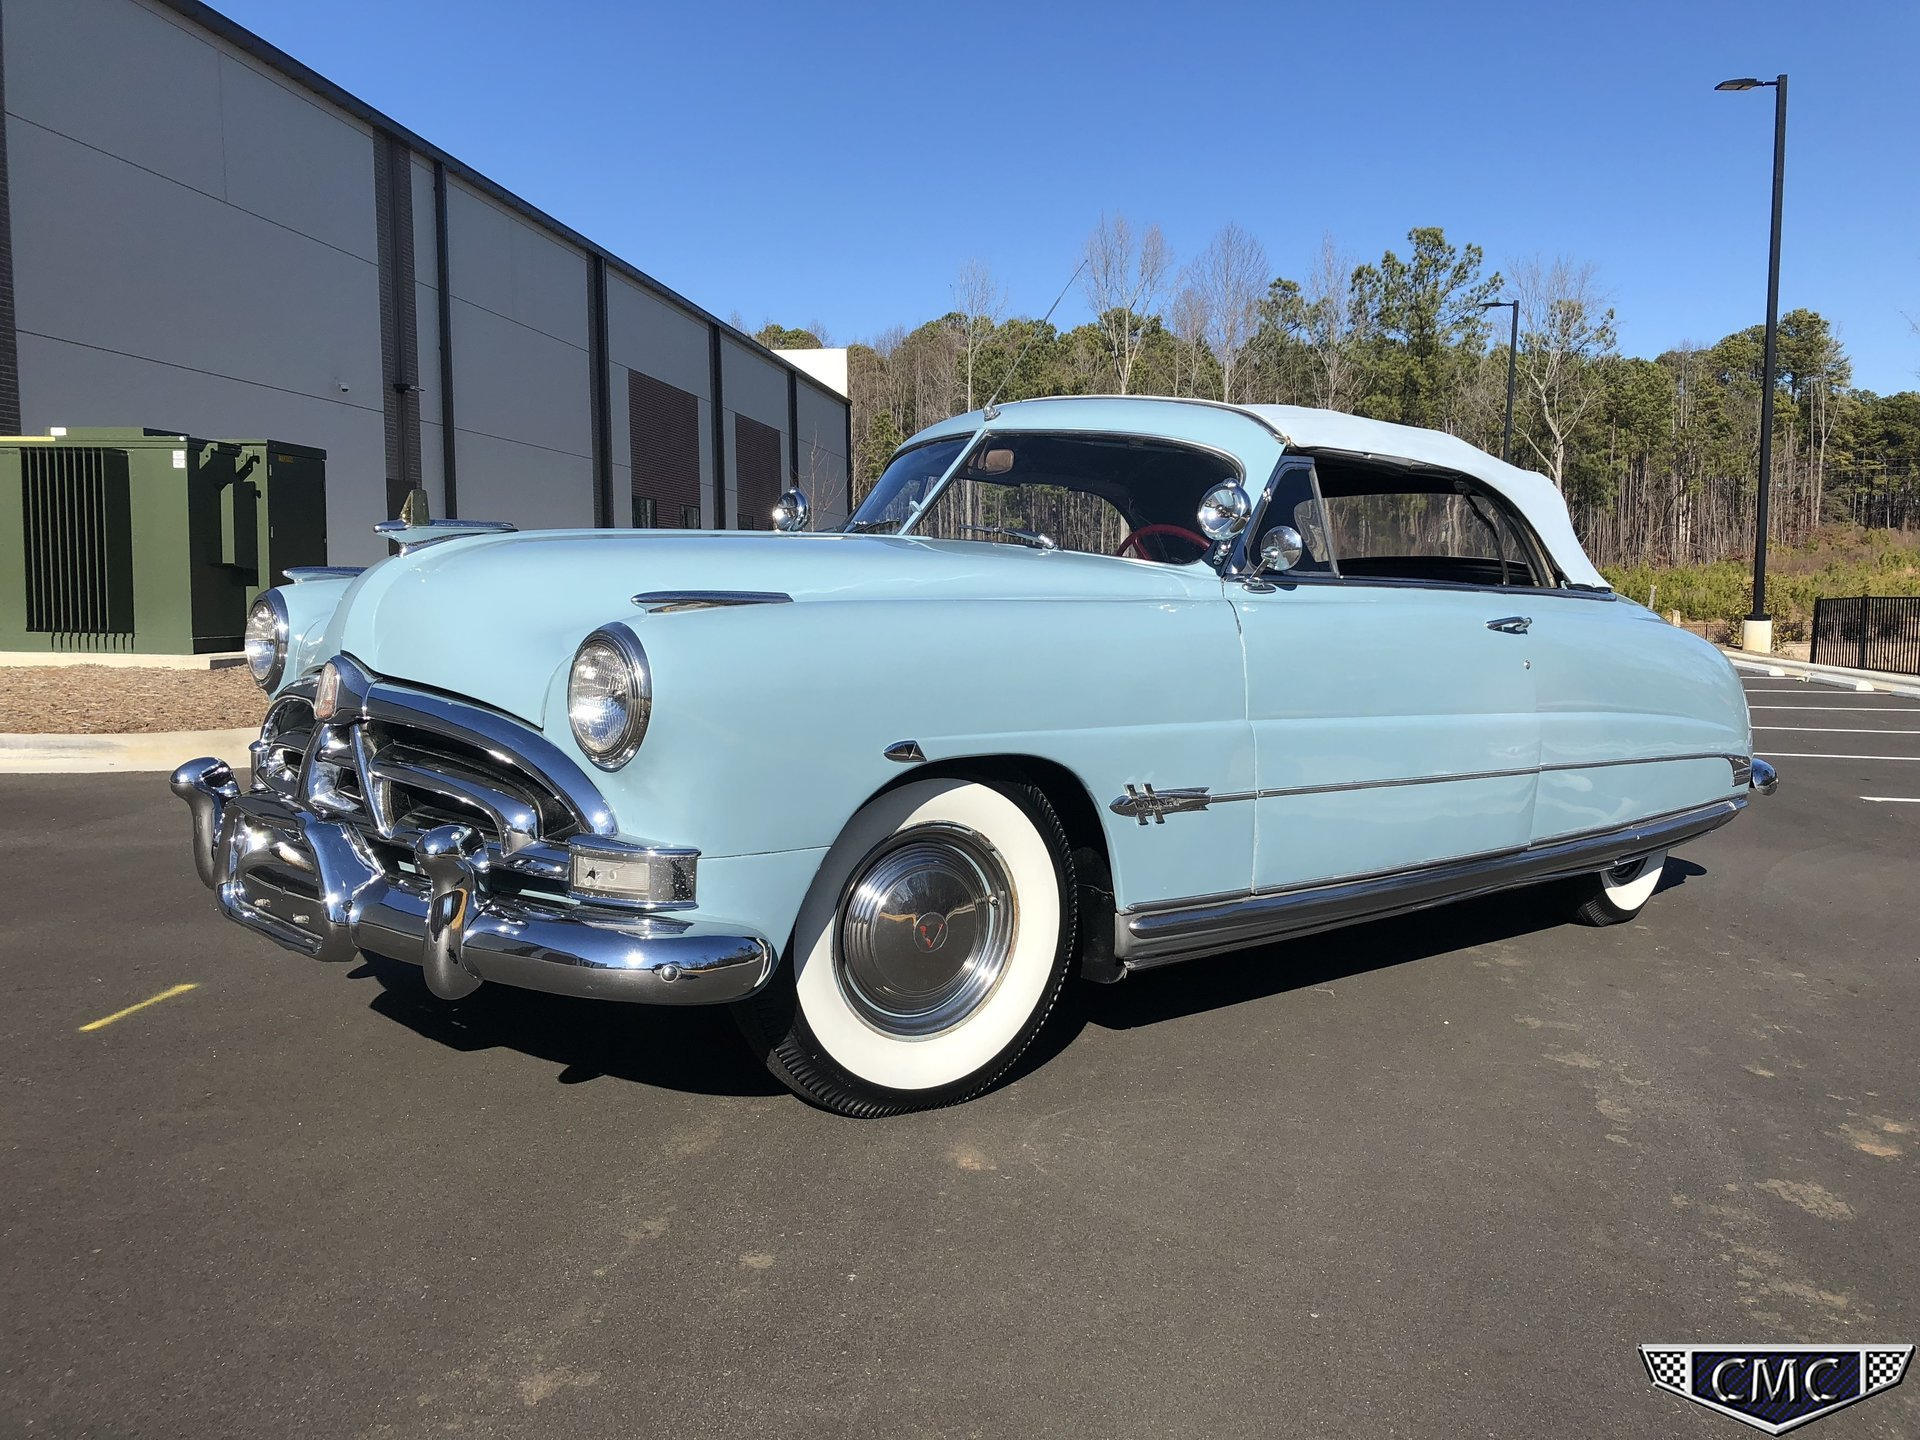 1951 hudson hornet for sale 78977 mcg. Black Bedroom Furniture Sets. Home Design Ideas